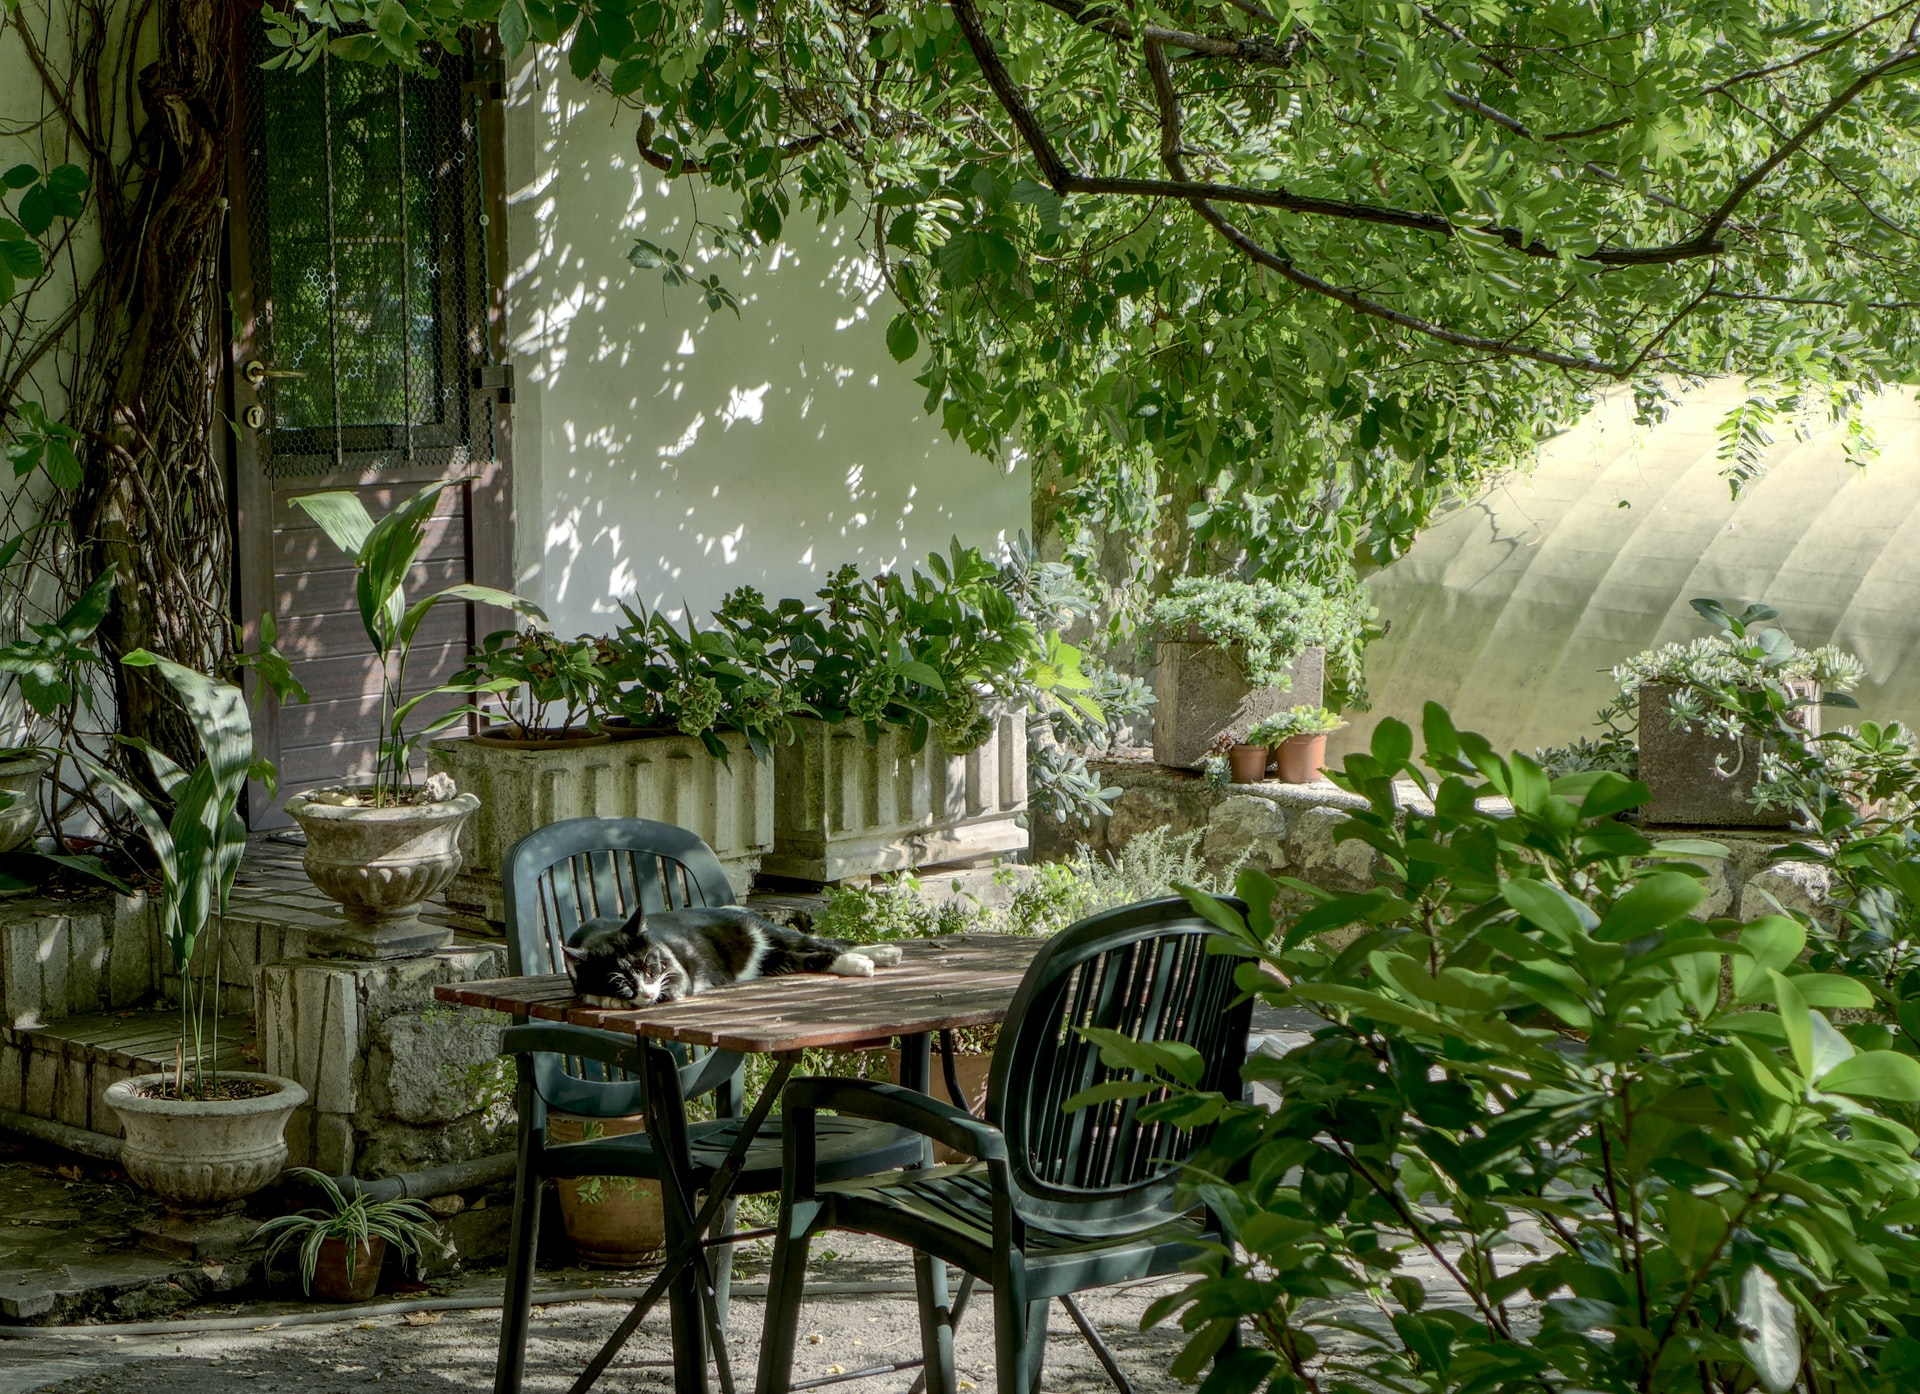 A brown wooden table and chairs inside a garden.